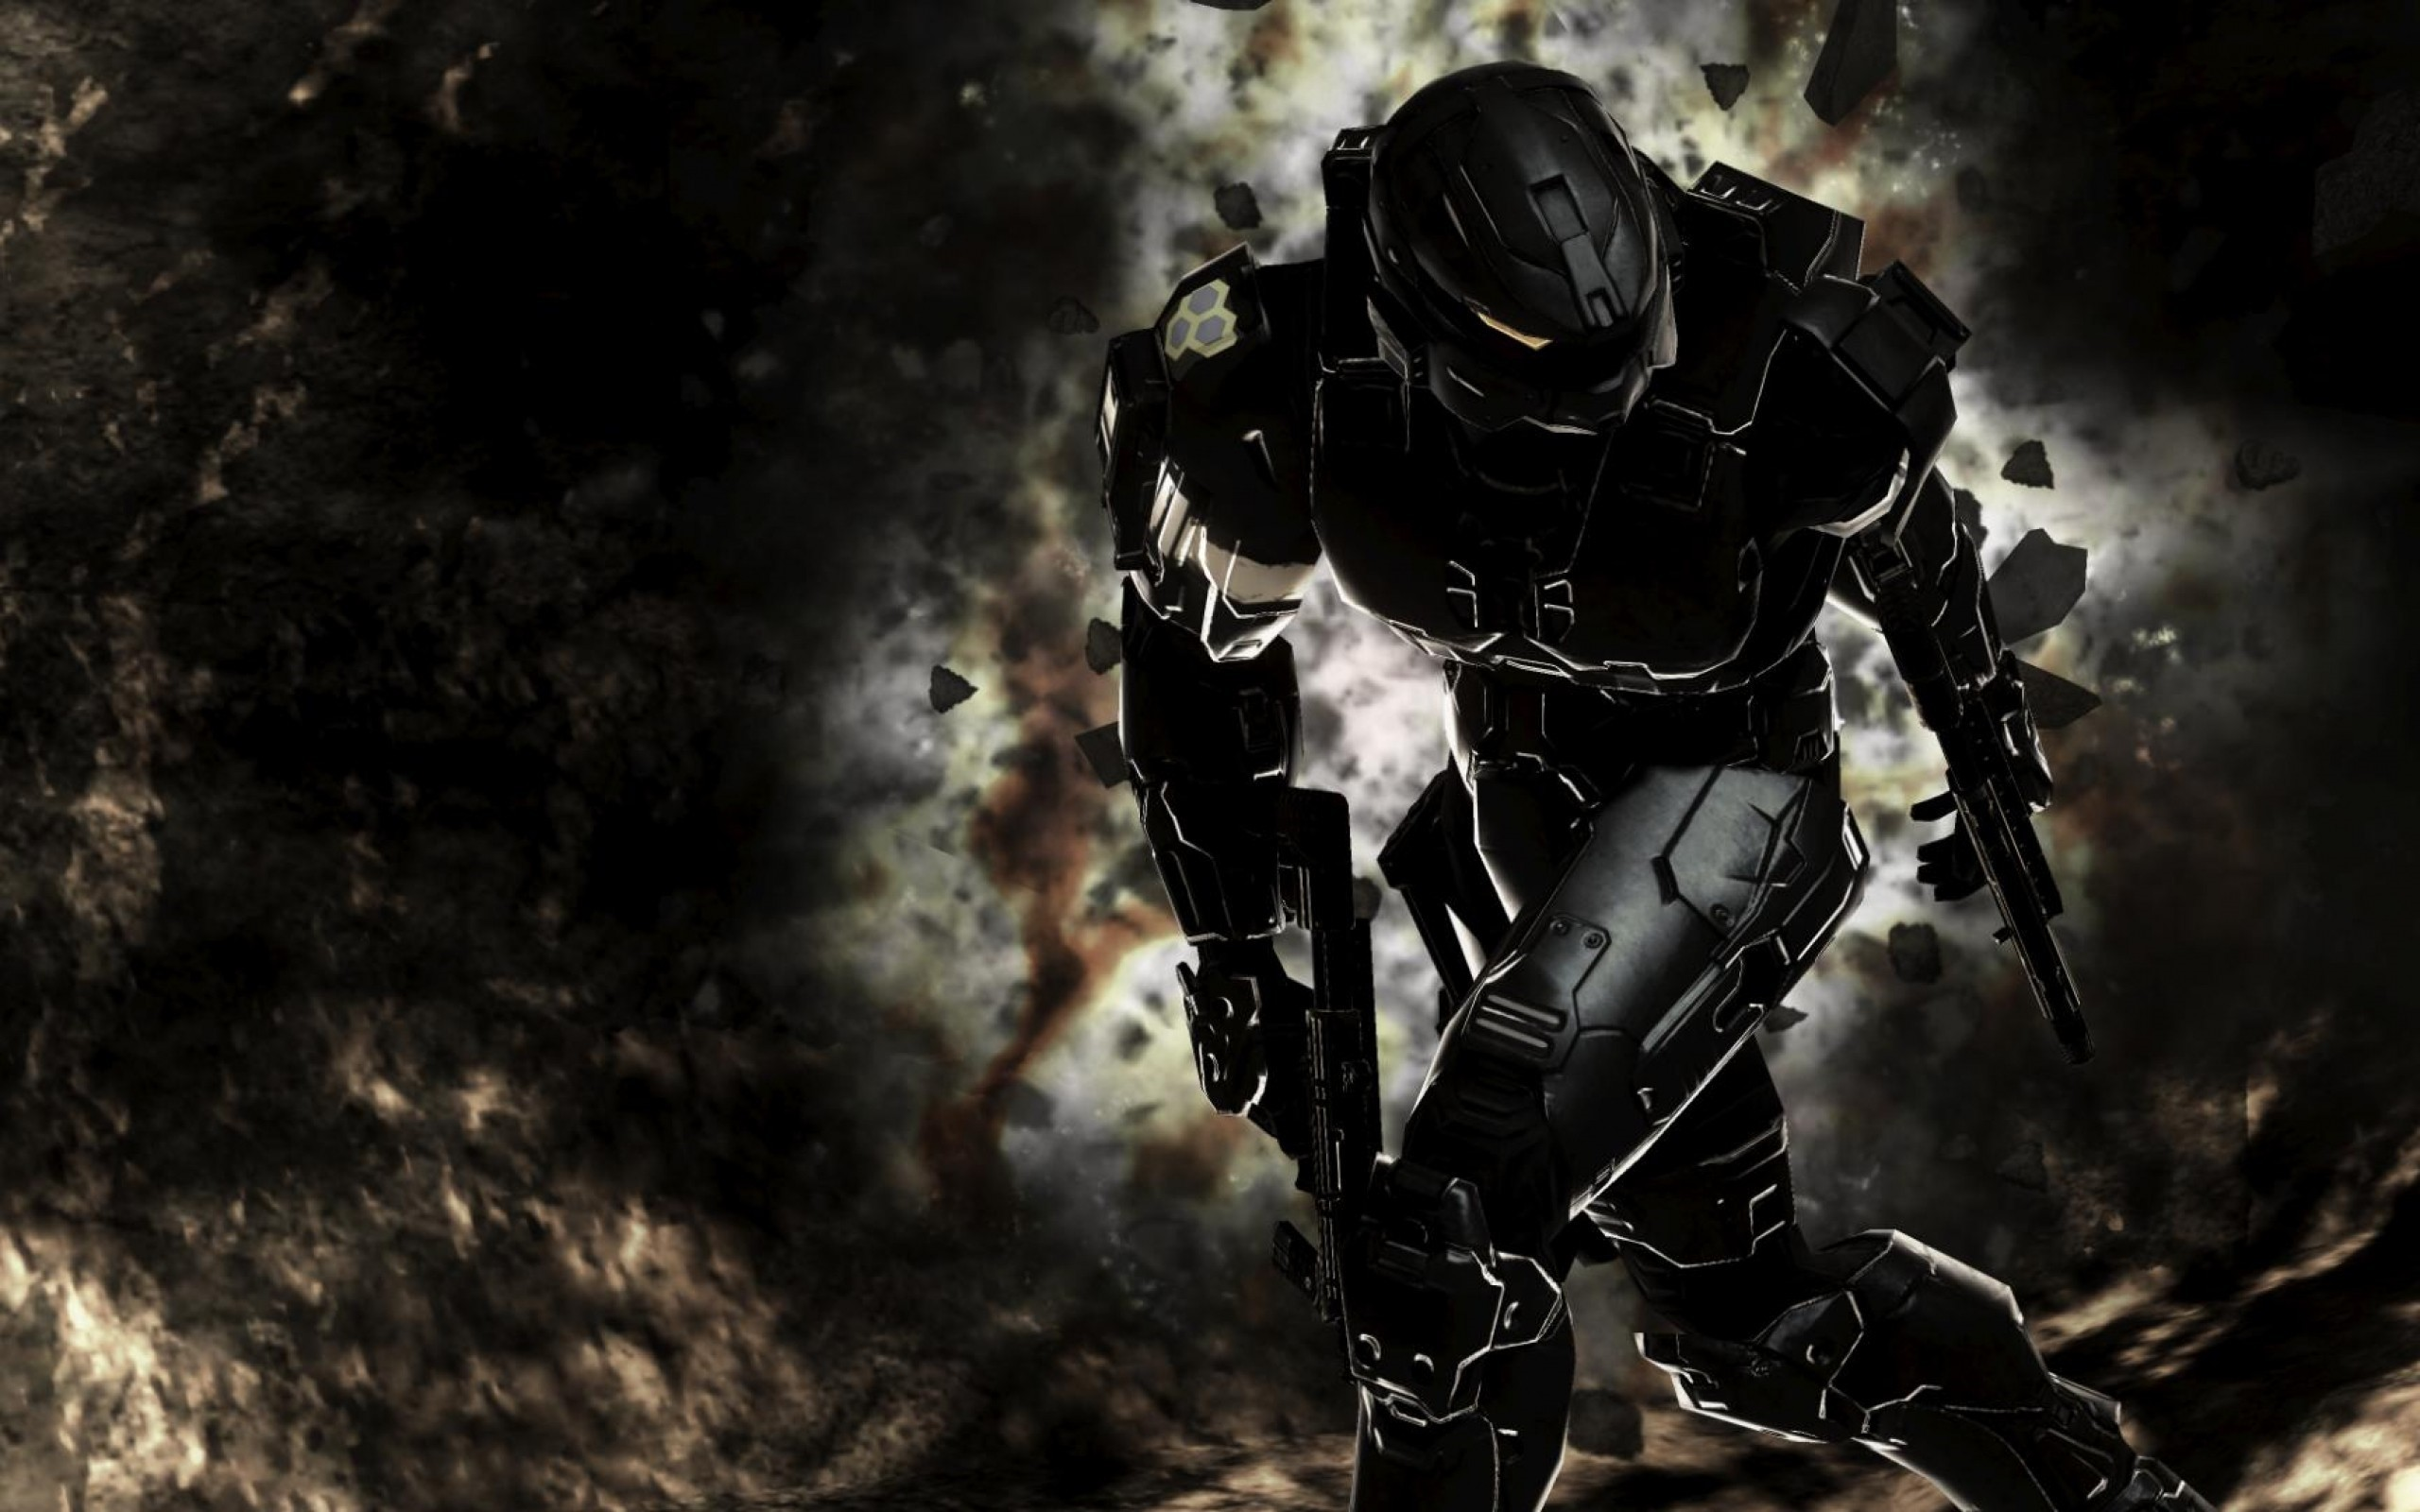 Res: 2560x1600, Halo, Master chief, Spartan, Halo 3 wallpaper and background